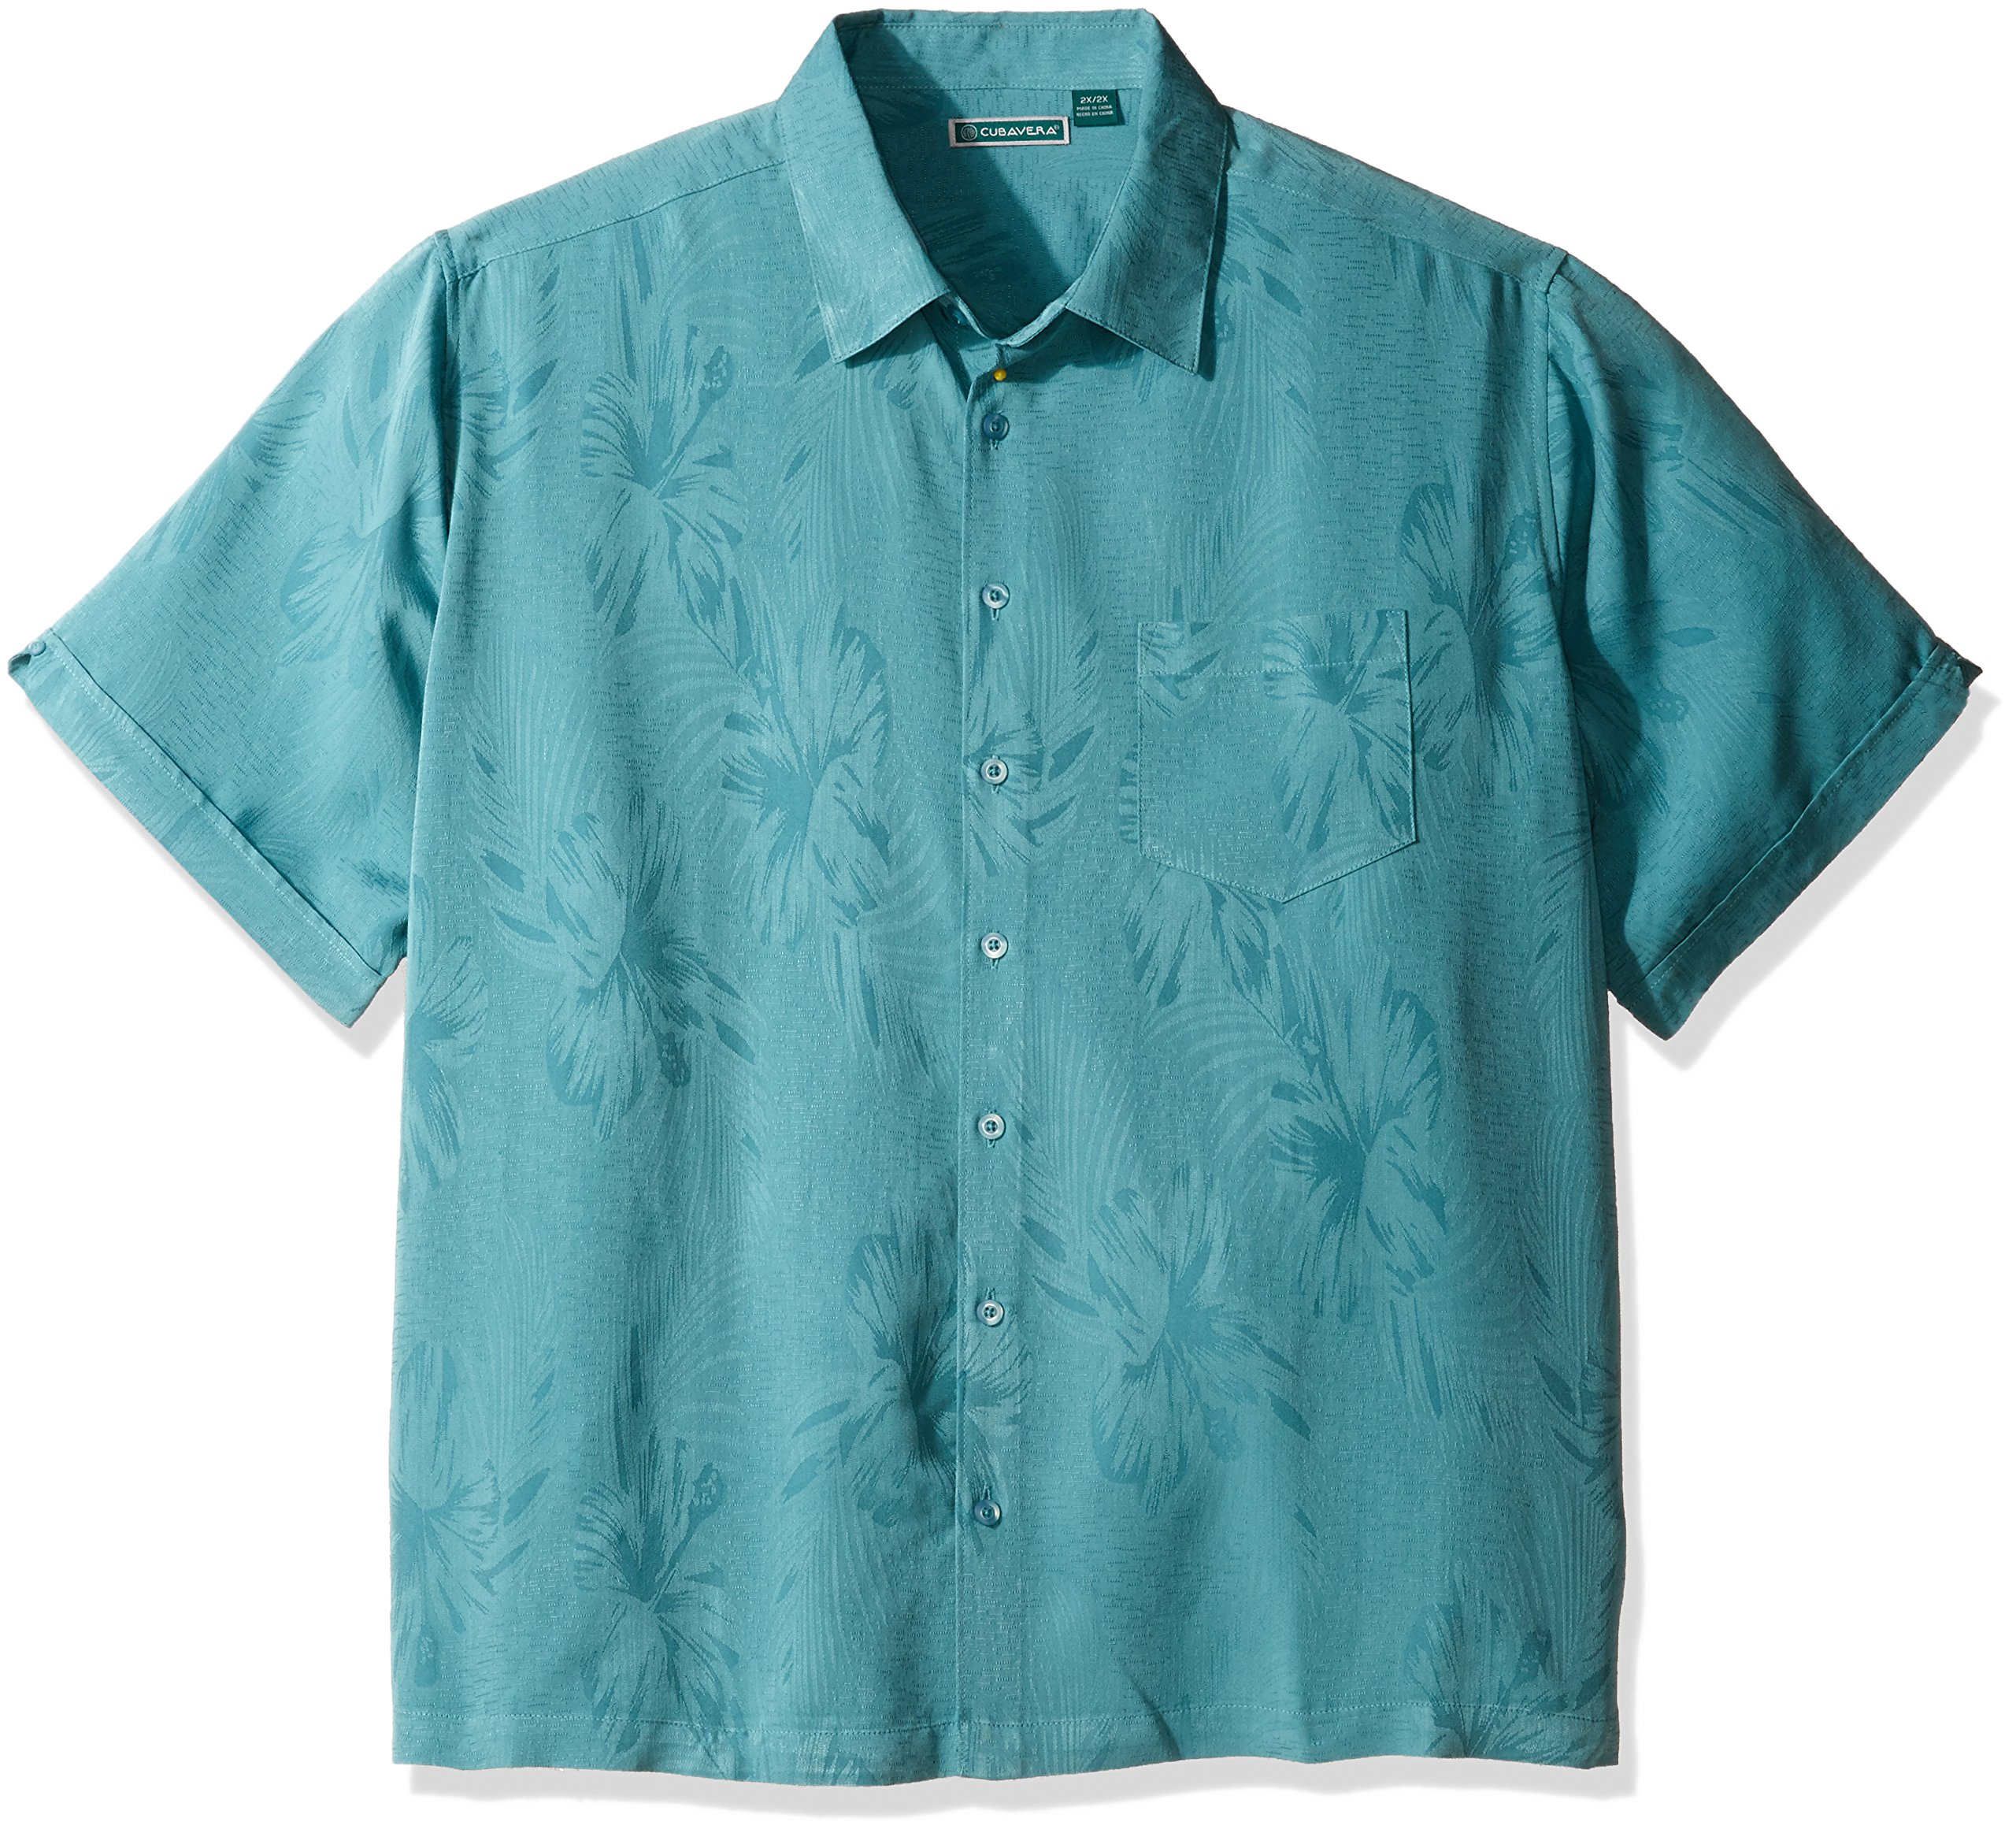 Cubavera Men's Tall Short Sleeve Polyester L-Shape Embroidered Button-Down Shirt, Colonial Blue, 3X-Large Big